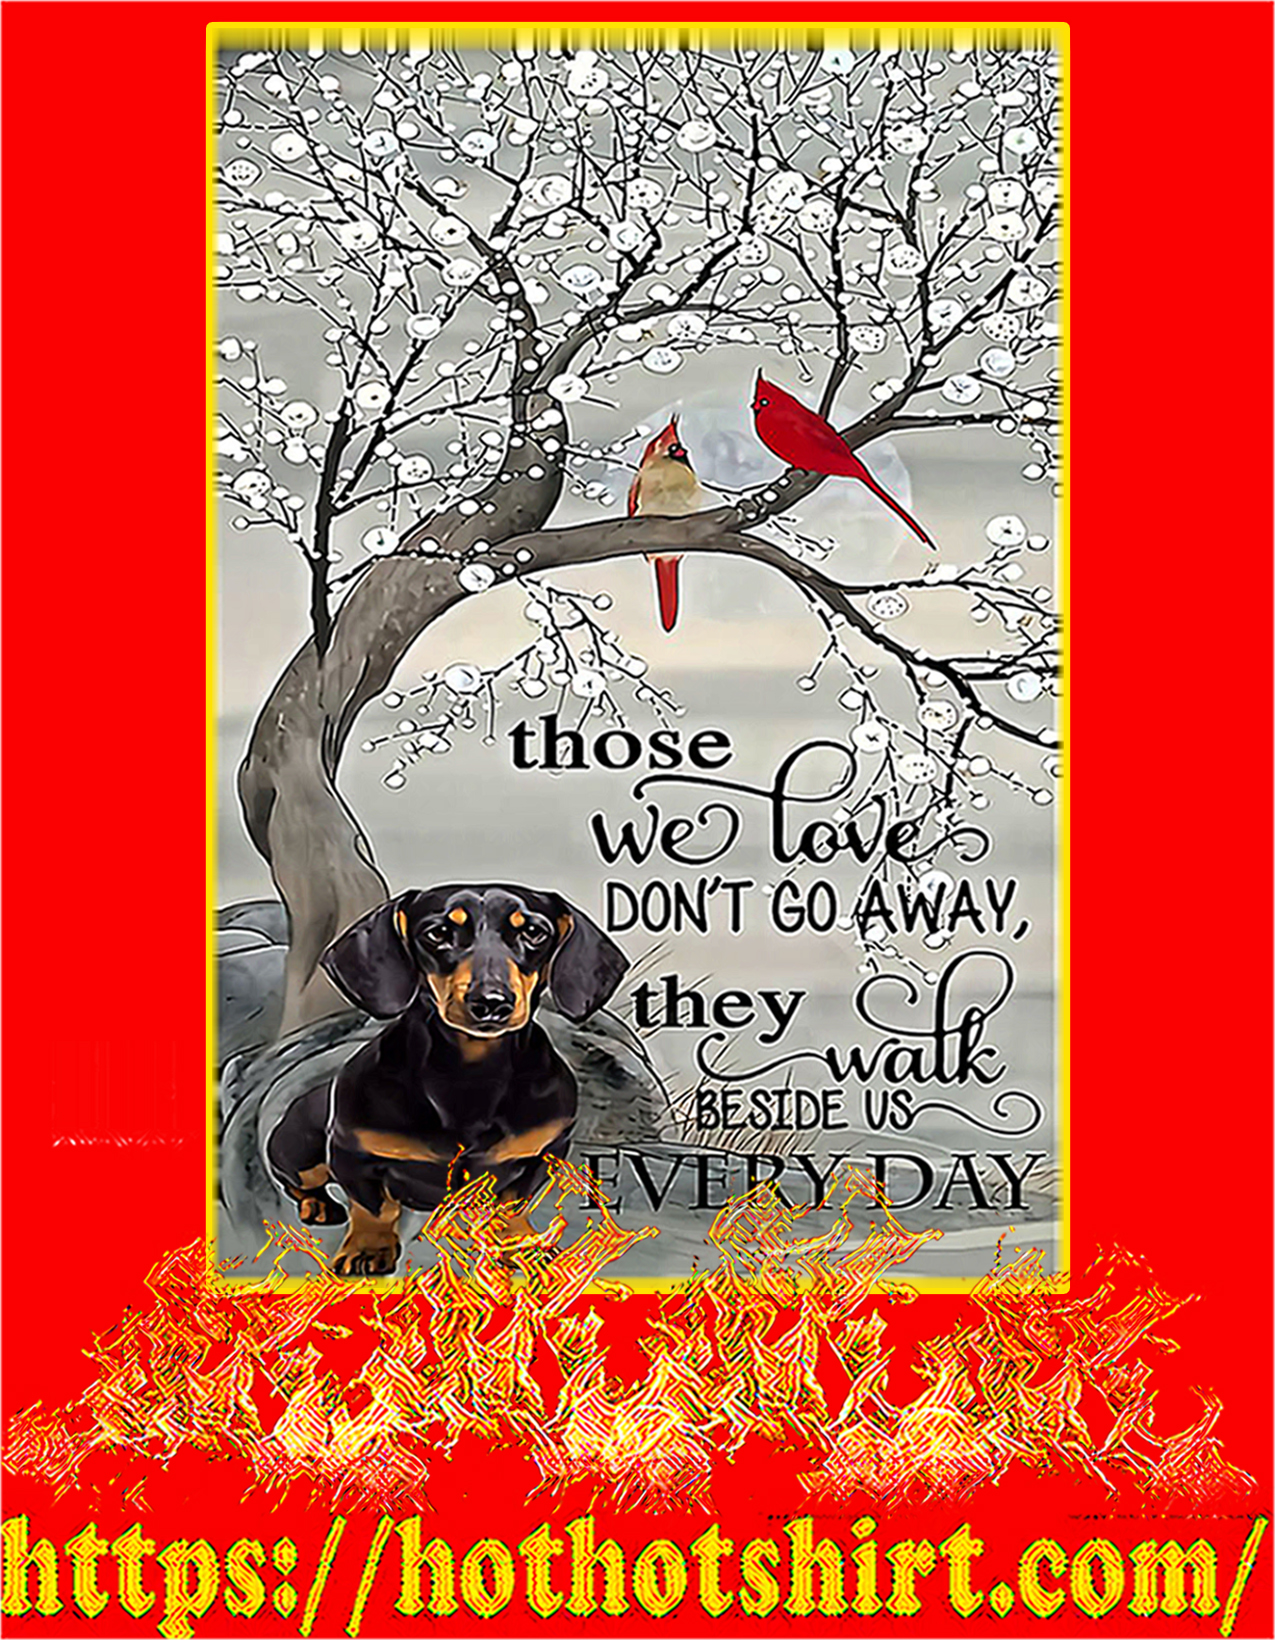 Dachshund those we love don't go away poster - A2